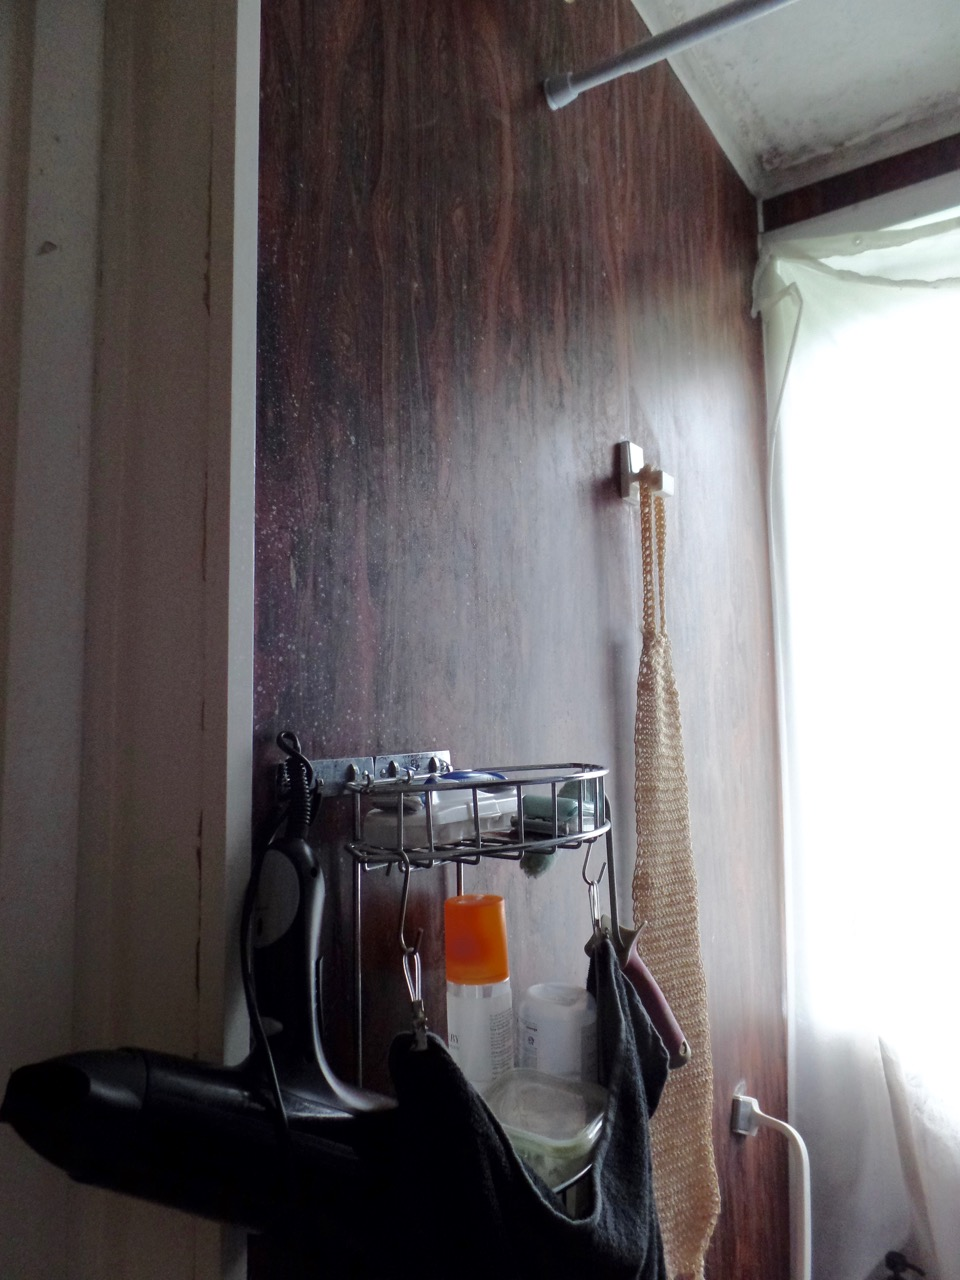 The window and wall opposite old shower/tub